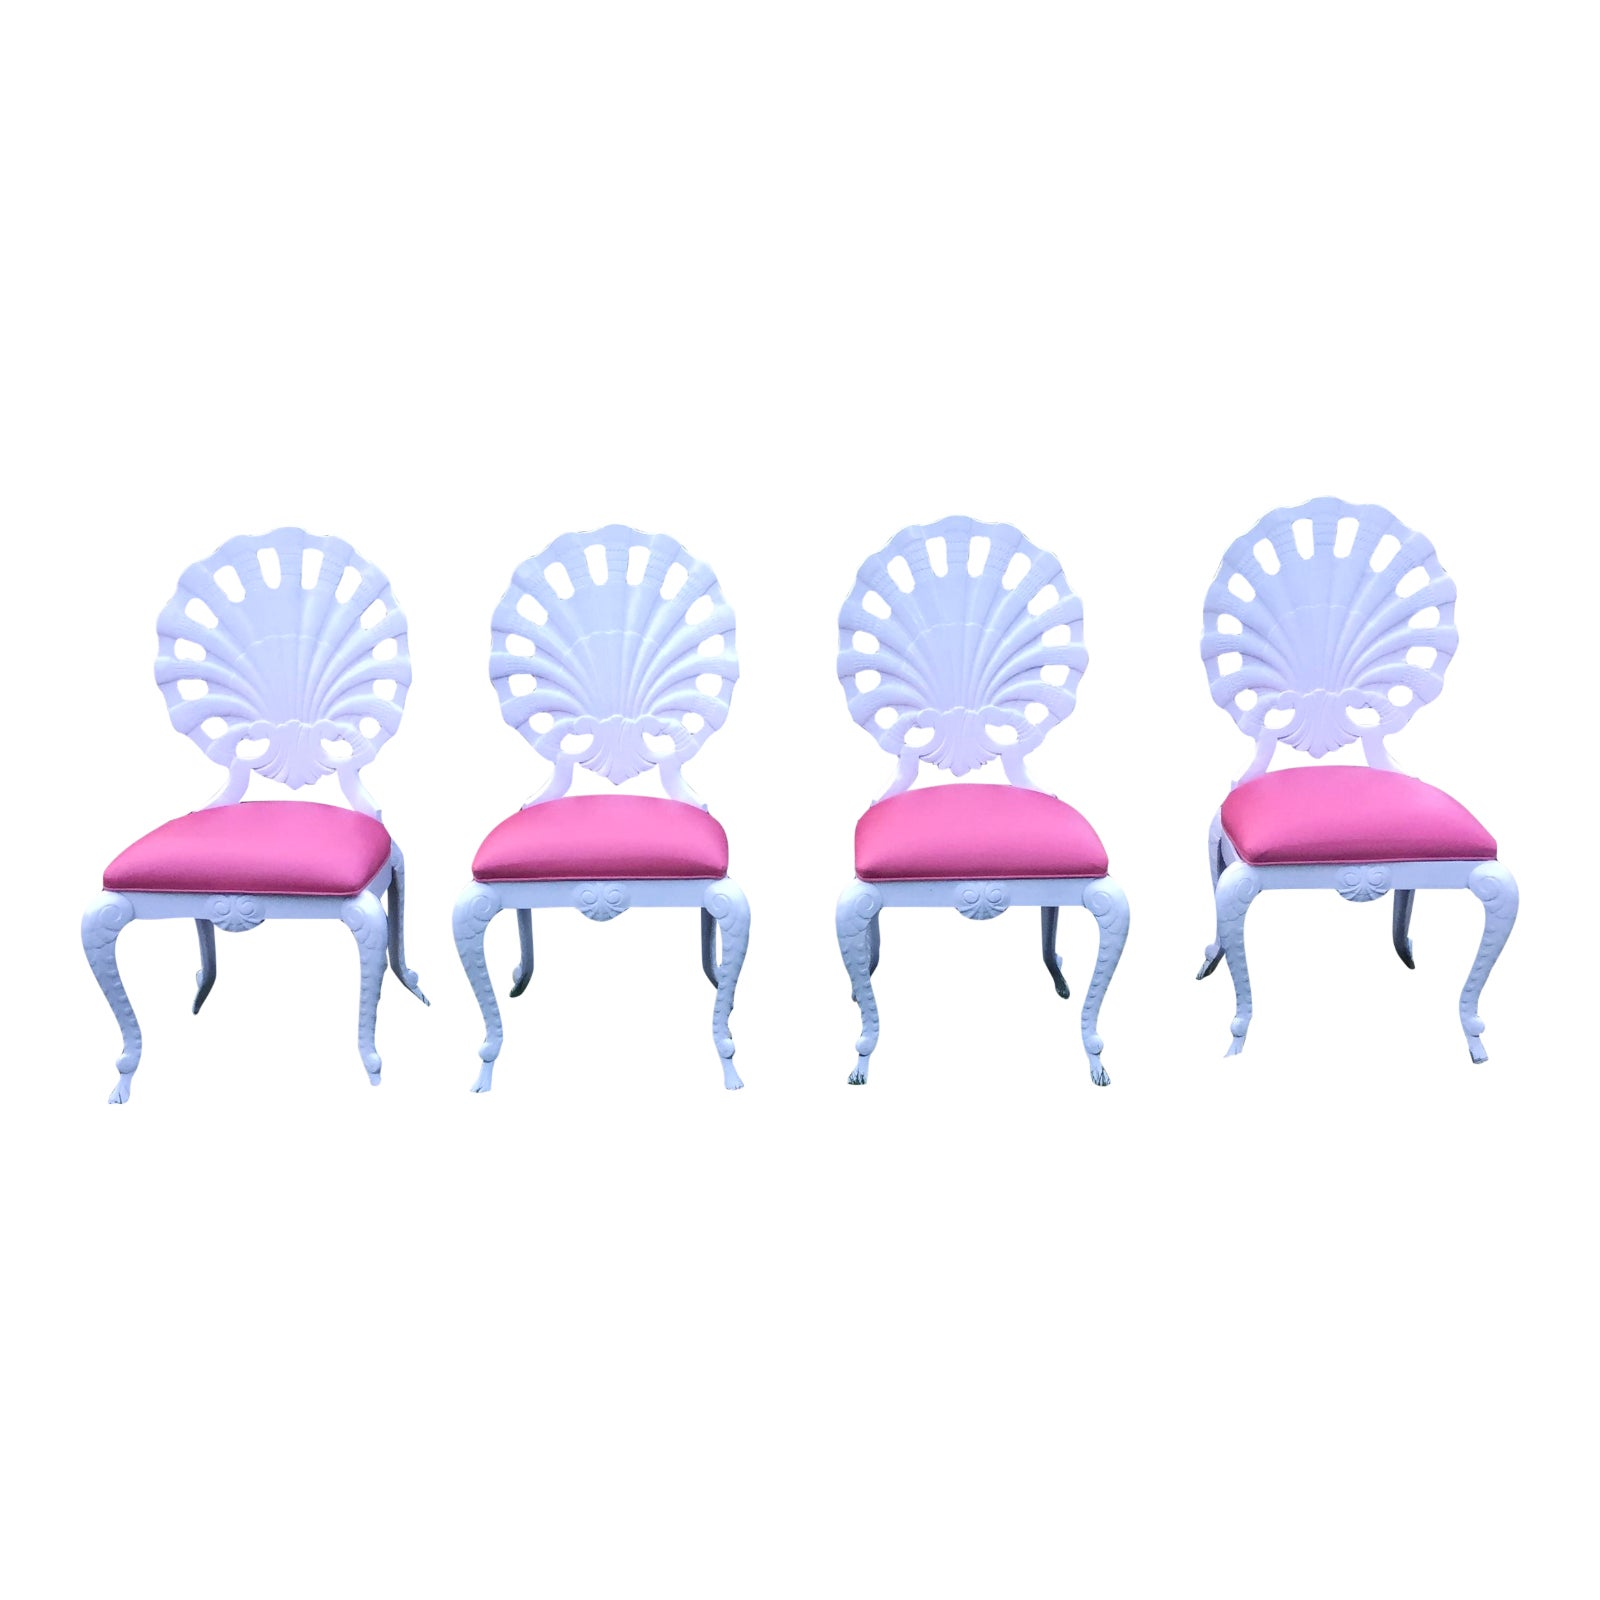 Vintage Pink Amp White Aluminum Patio Chairs Set Of 4